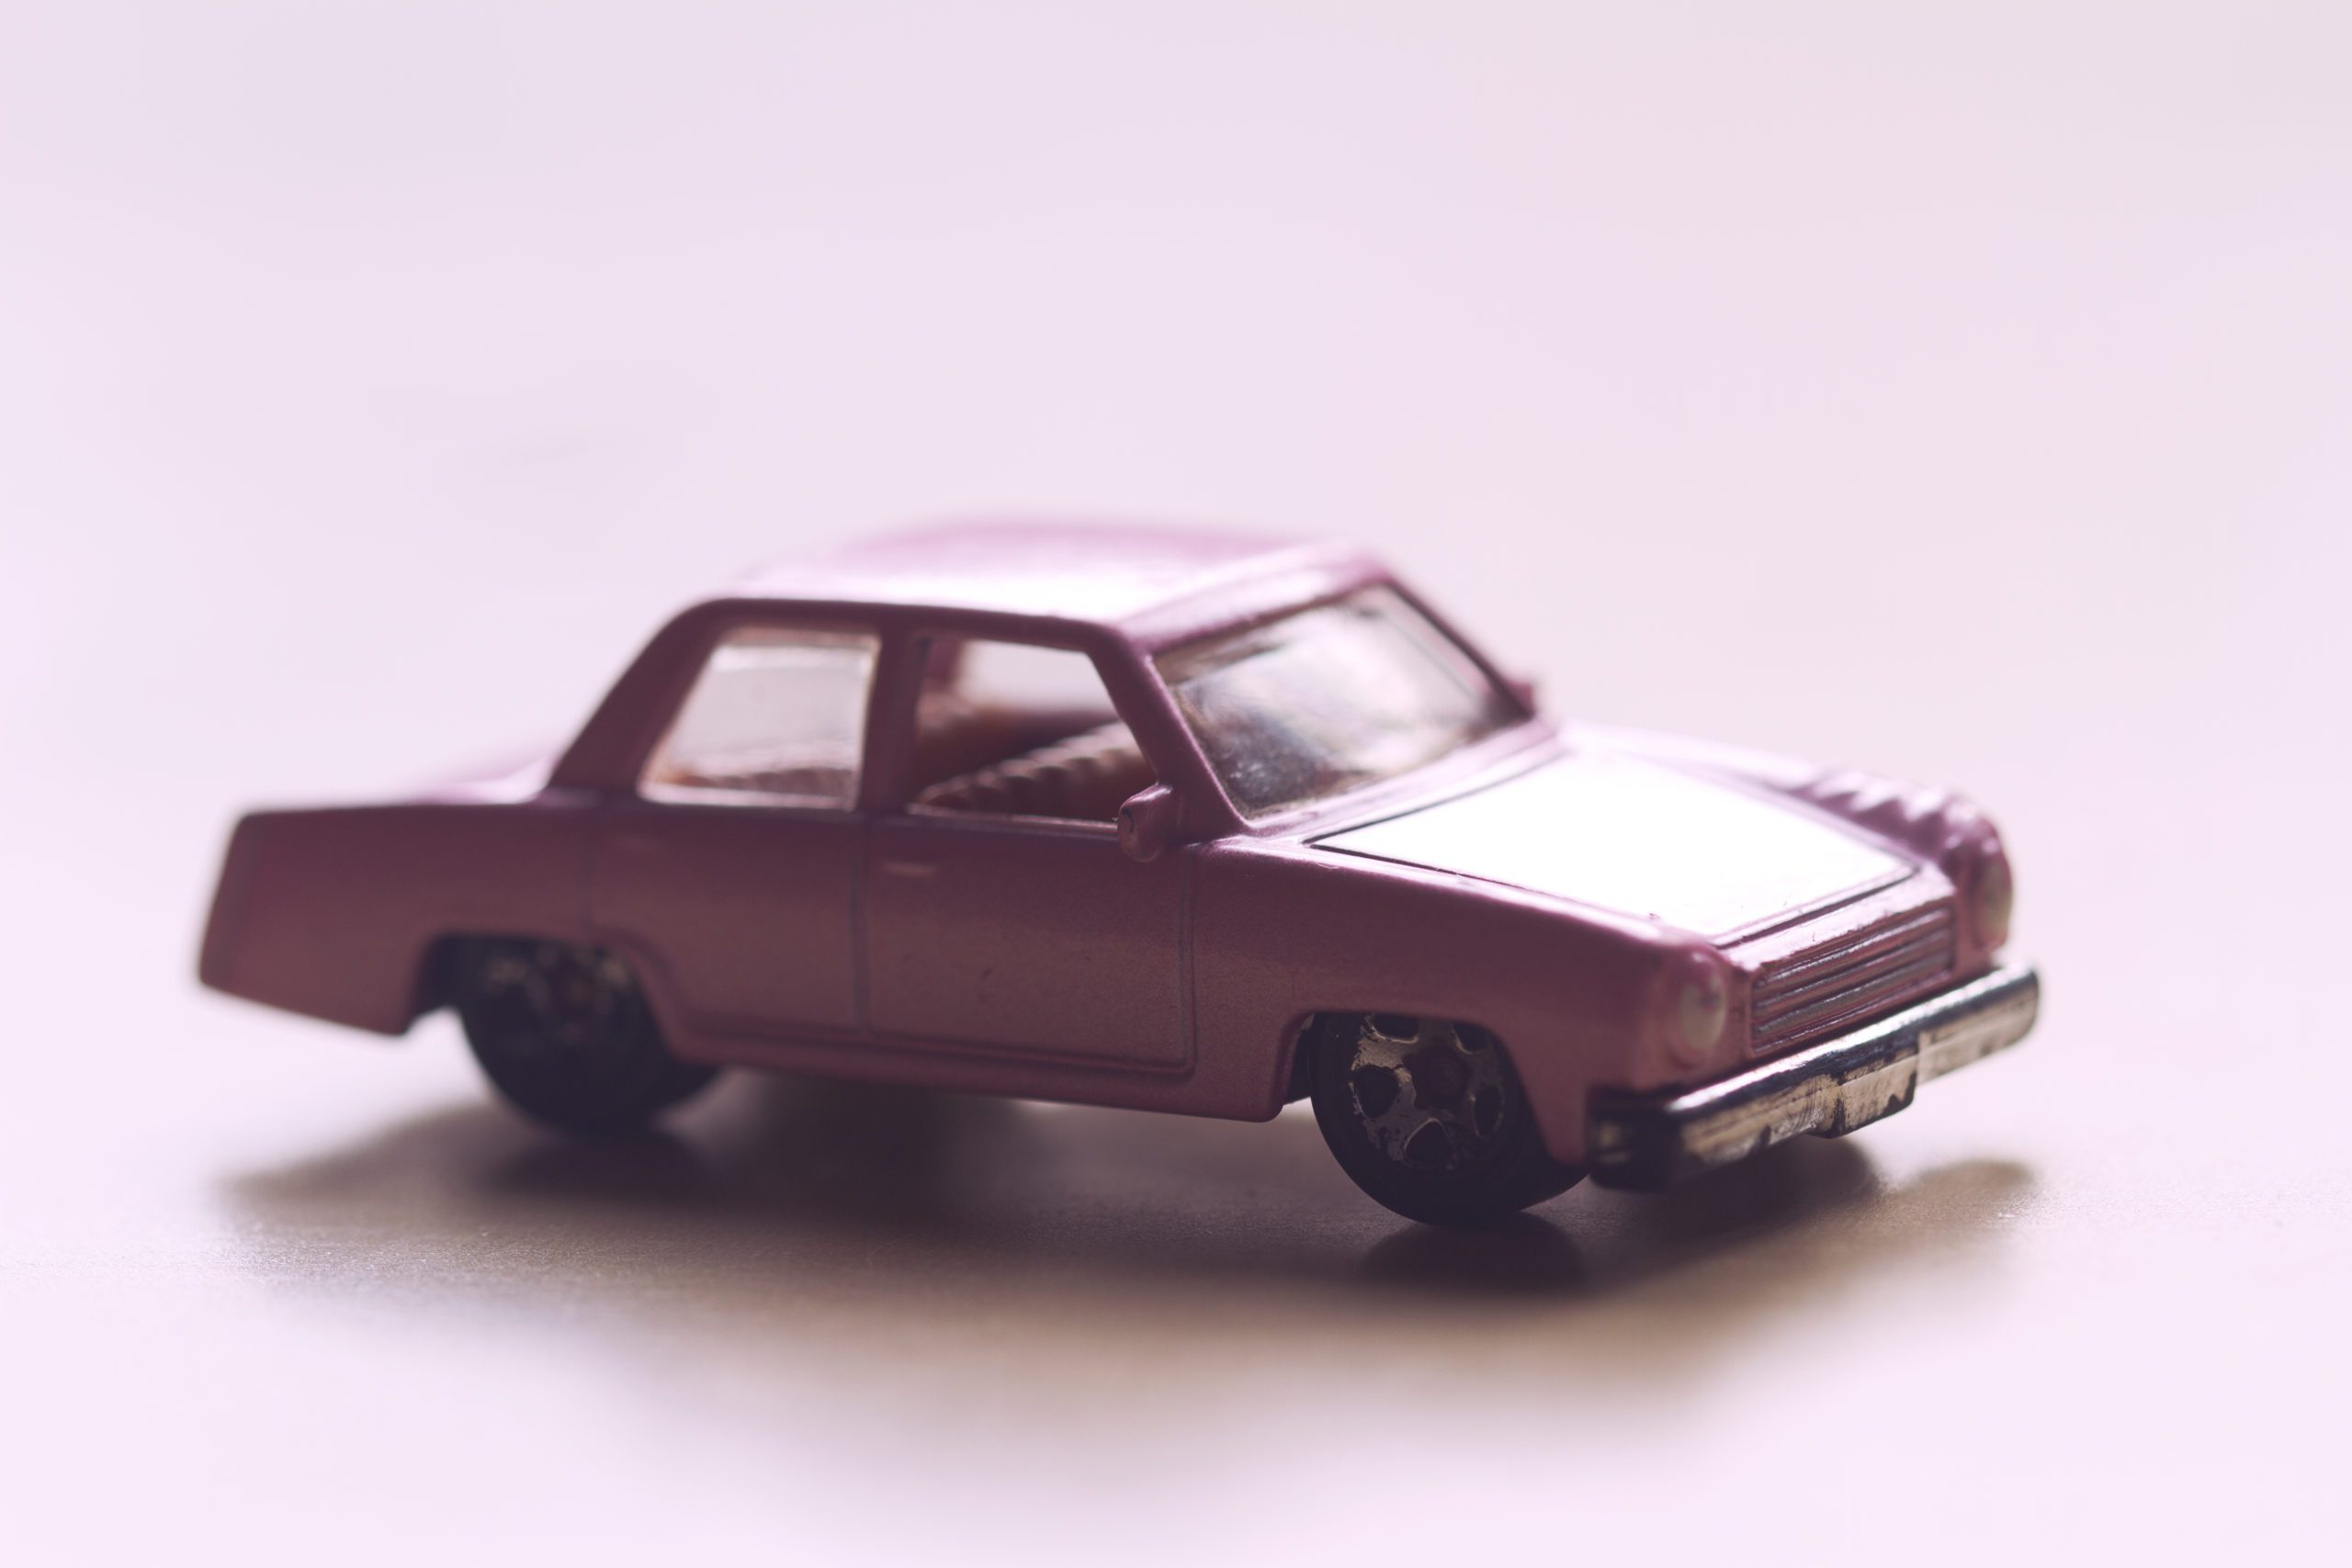 Insuring Old Vehicles